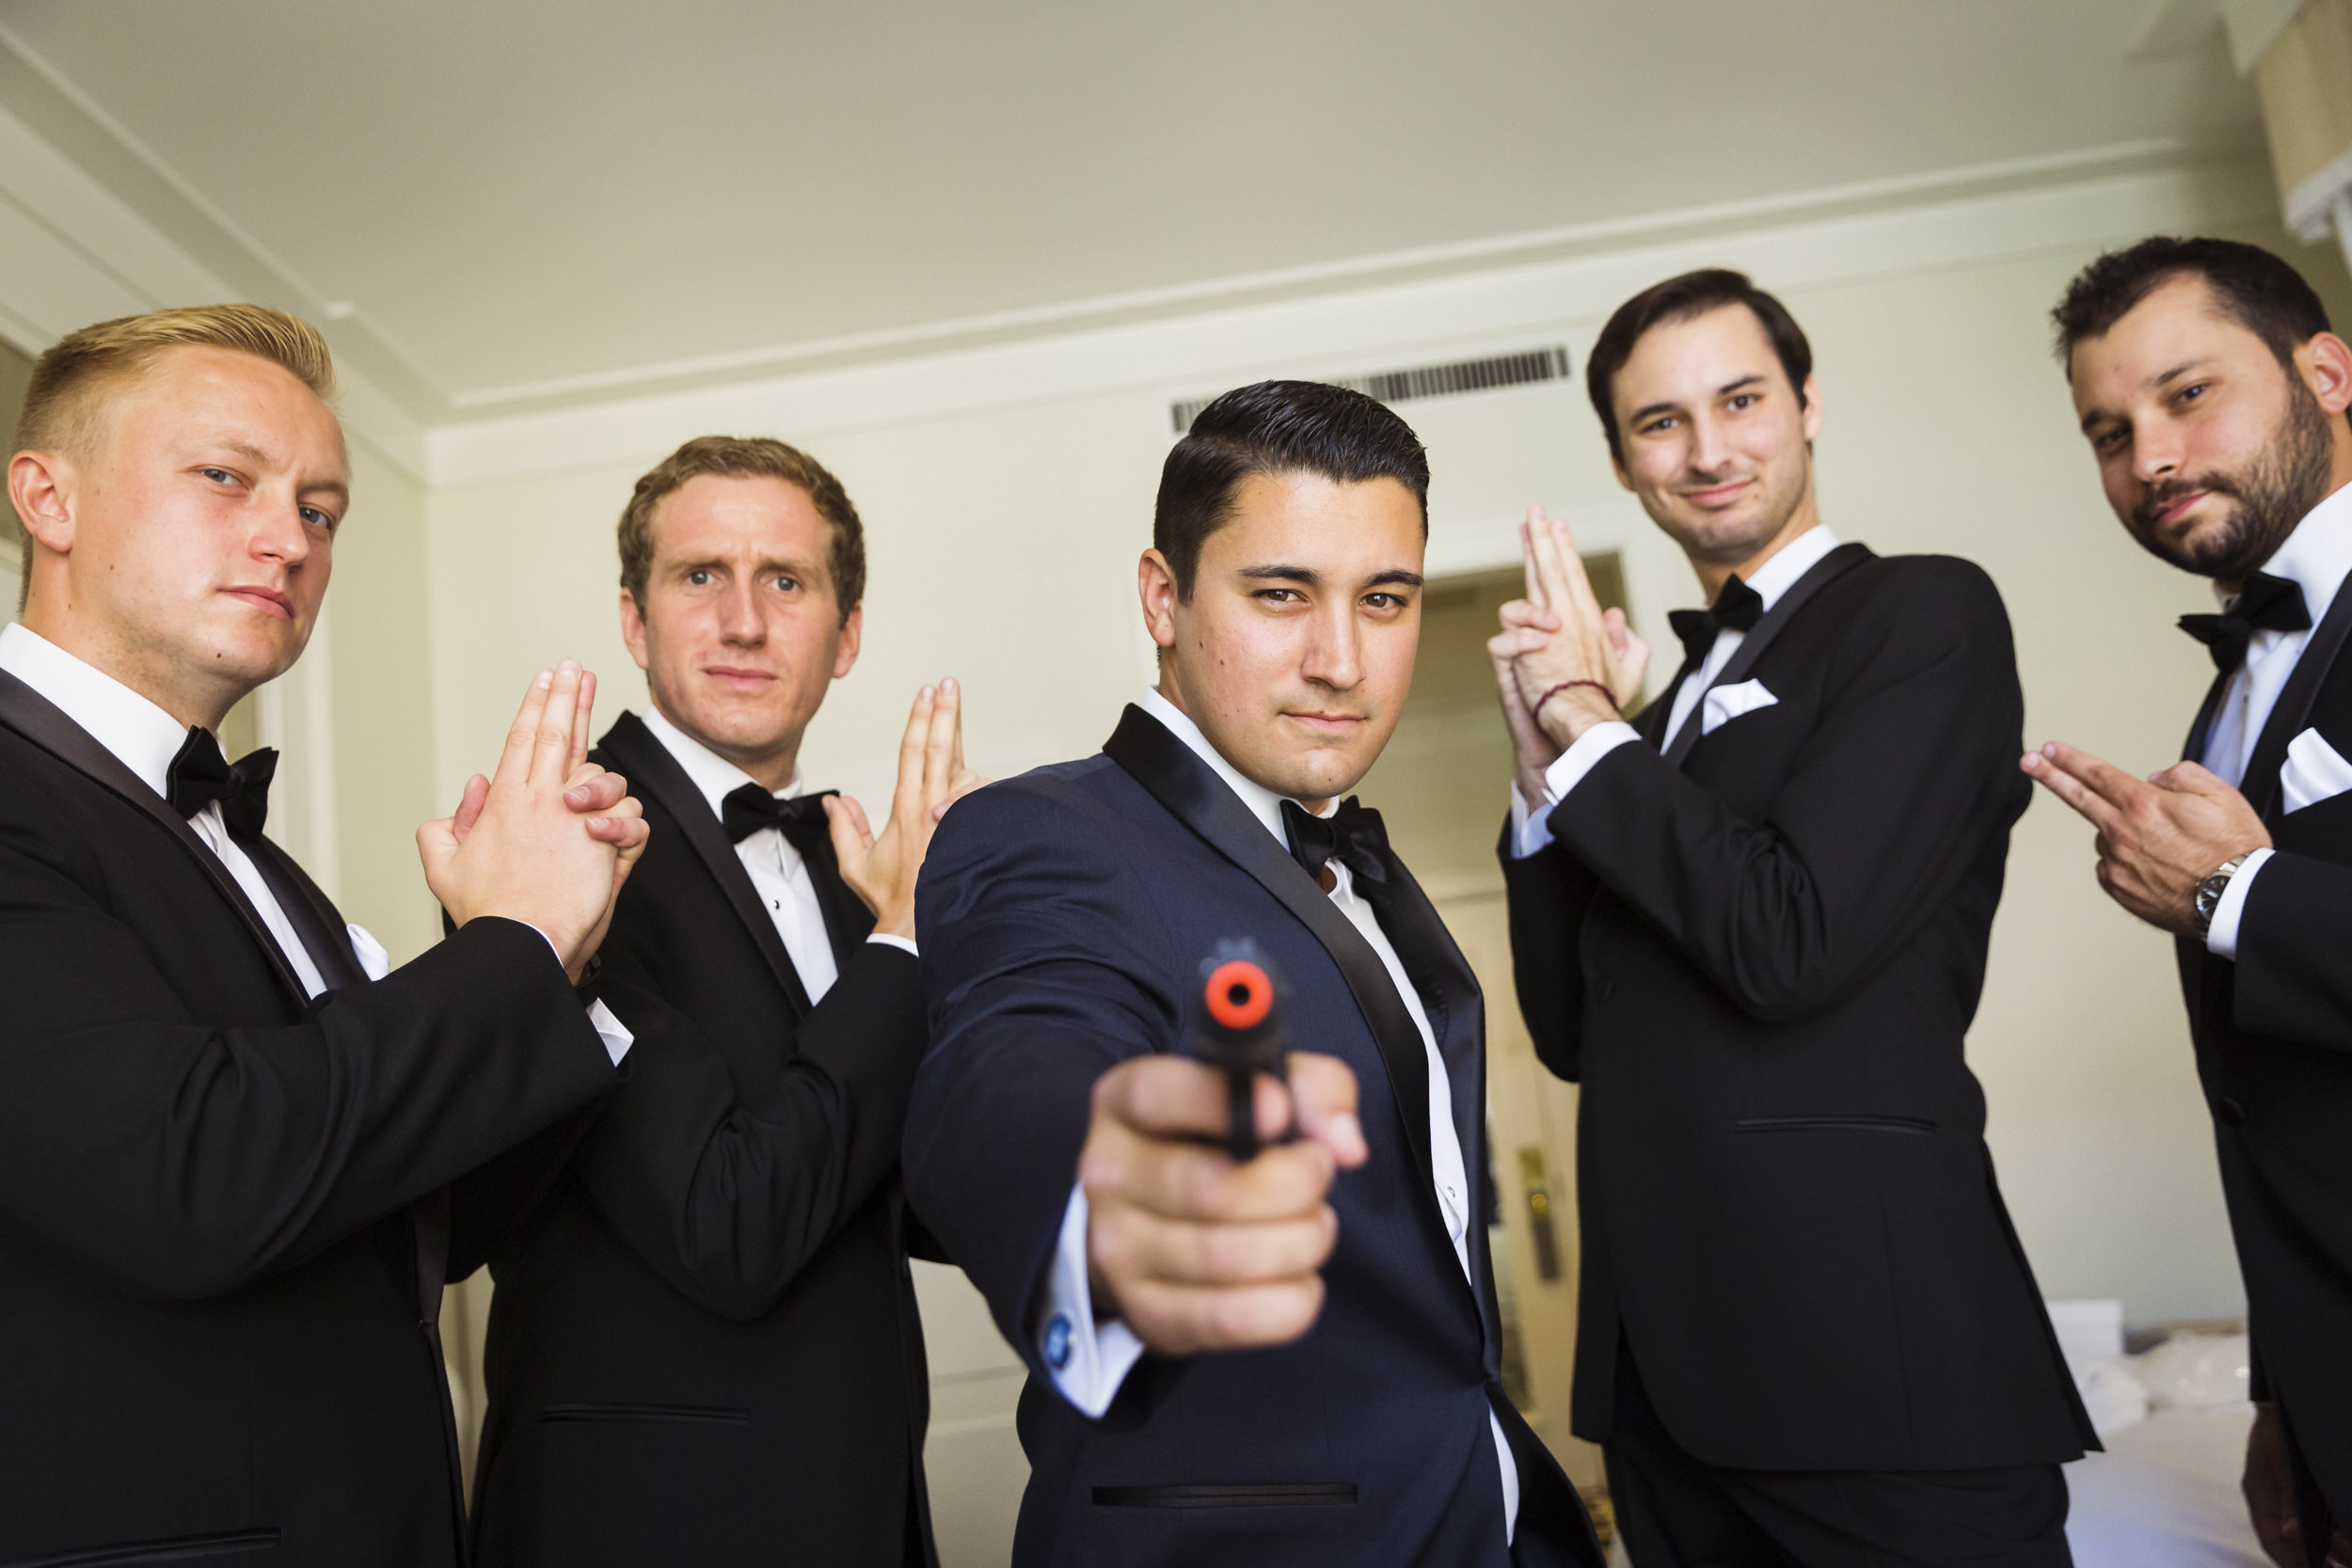 groomsmen-portrait-james-bond-pose-1.jpg